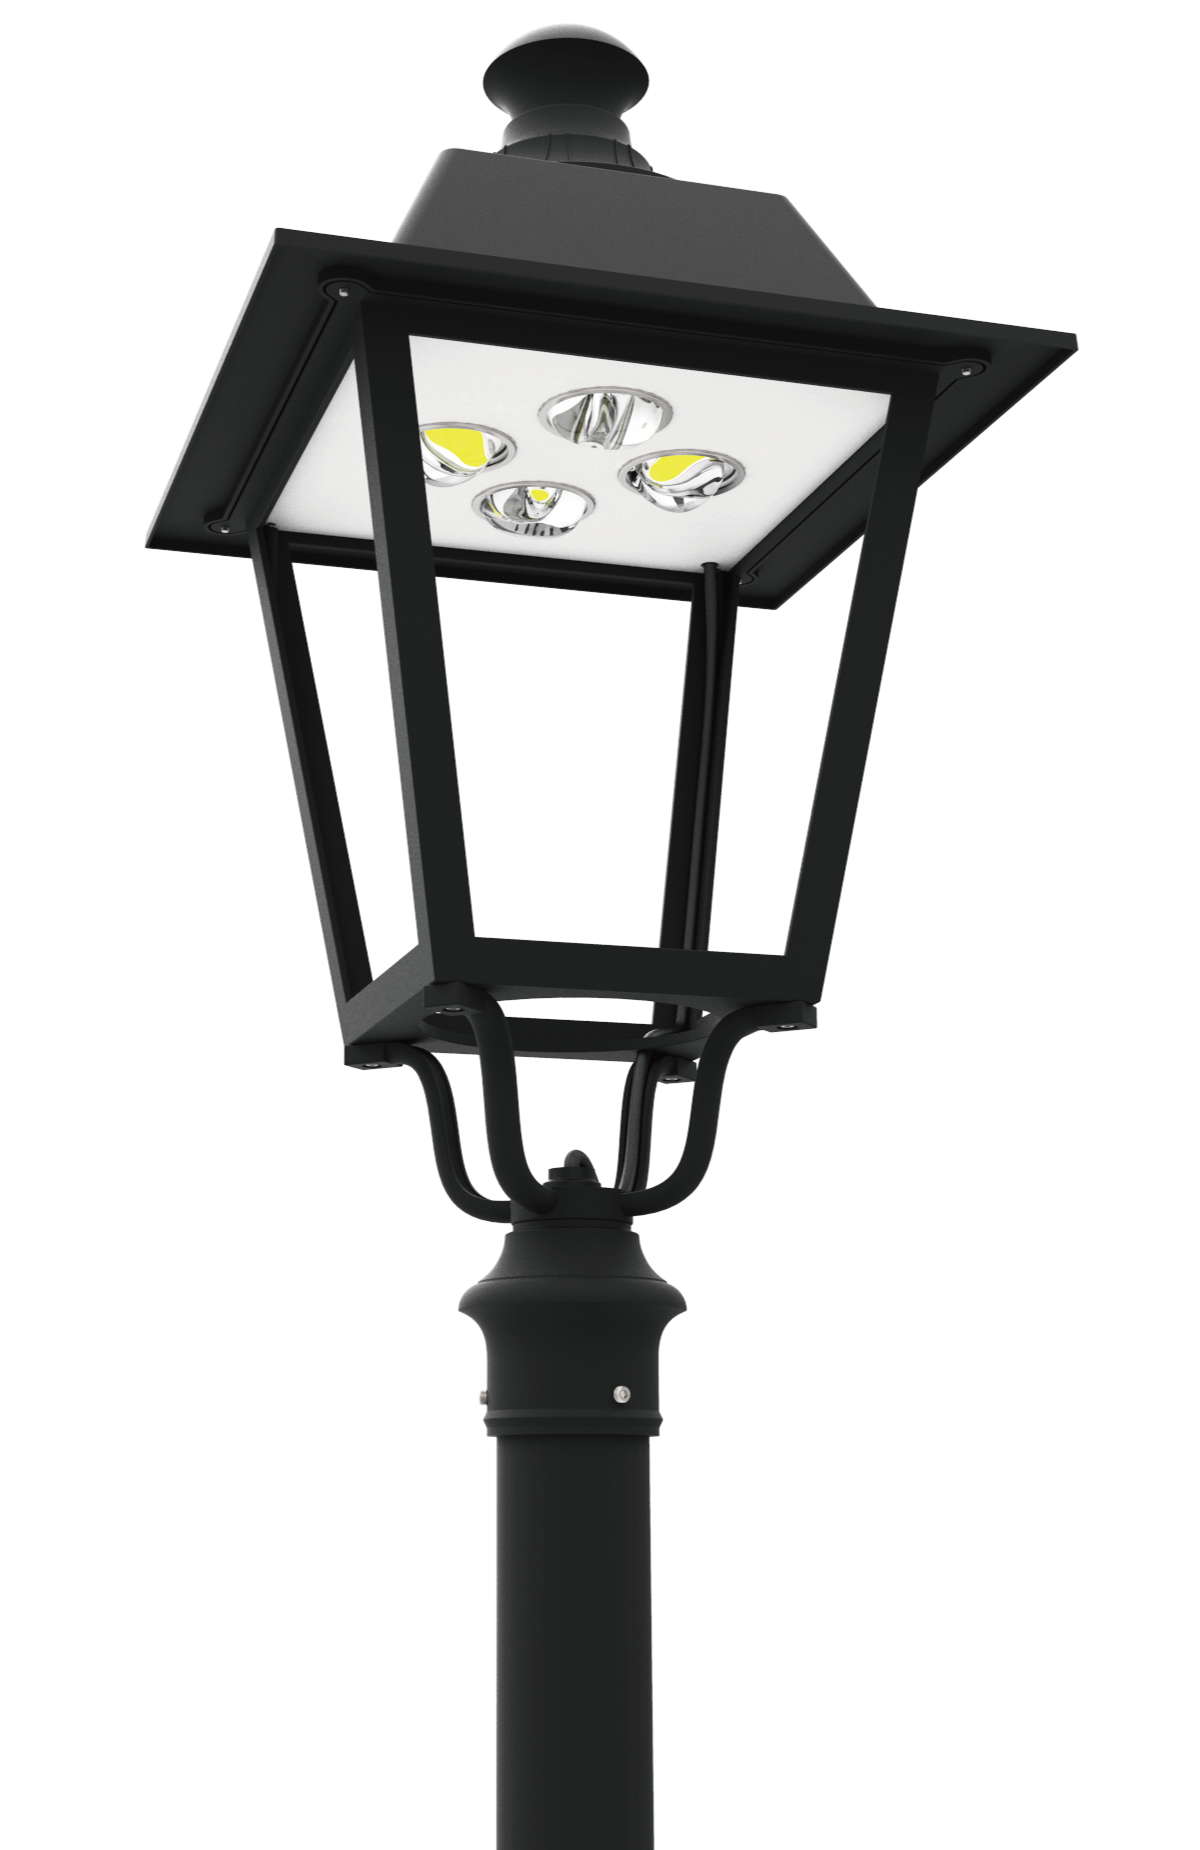 led pt 710 series led post top lantern light fixtures. Black Bedroom Furniture Sets. Home Design Ideas